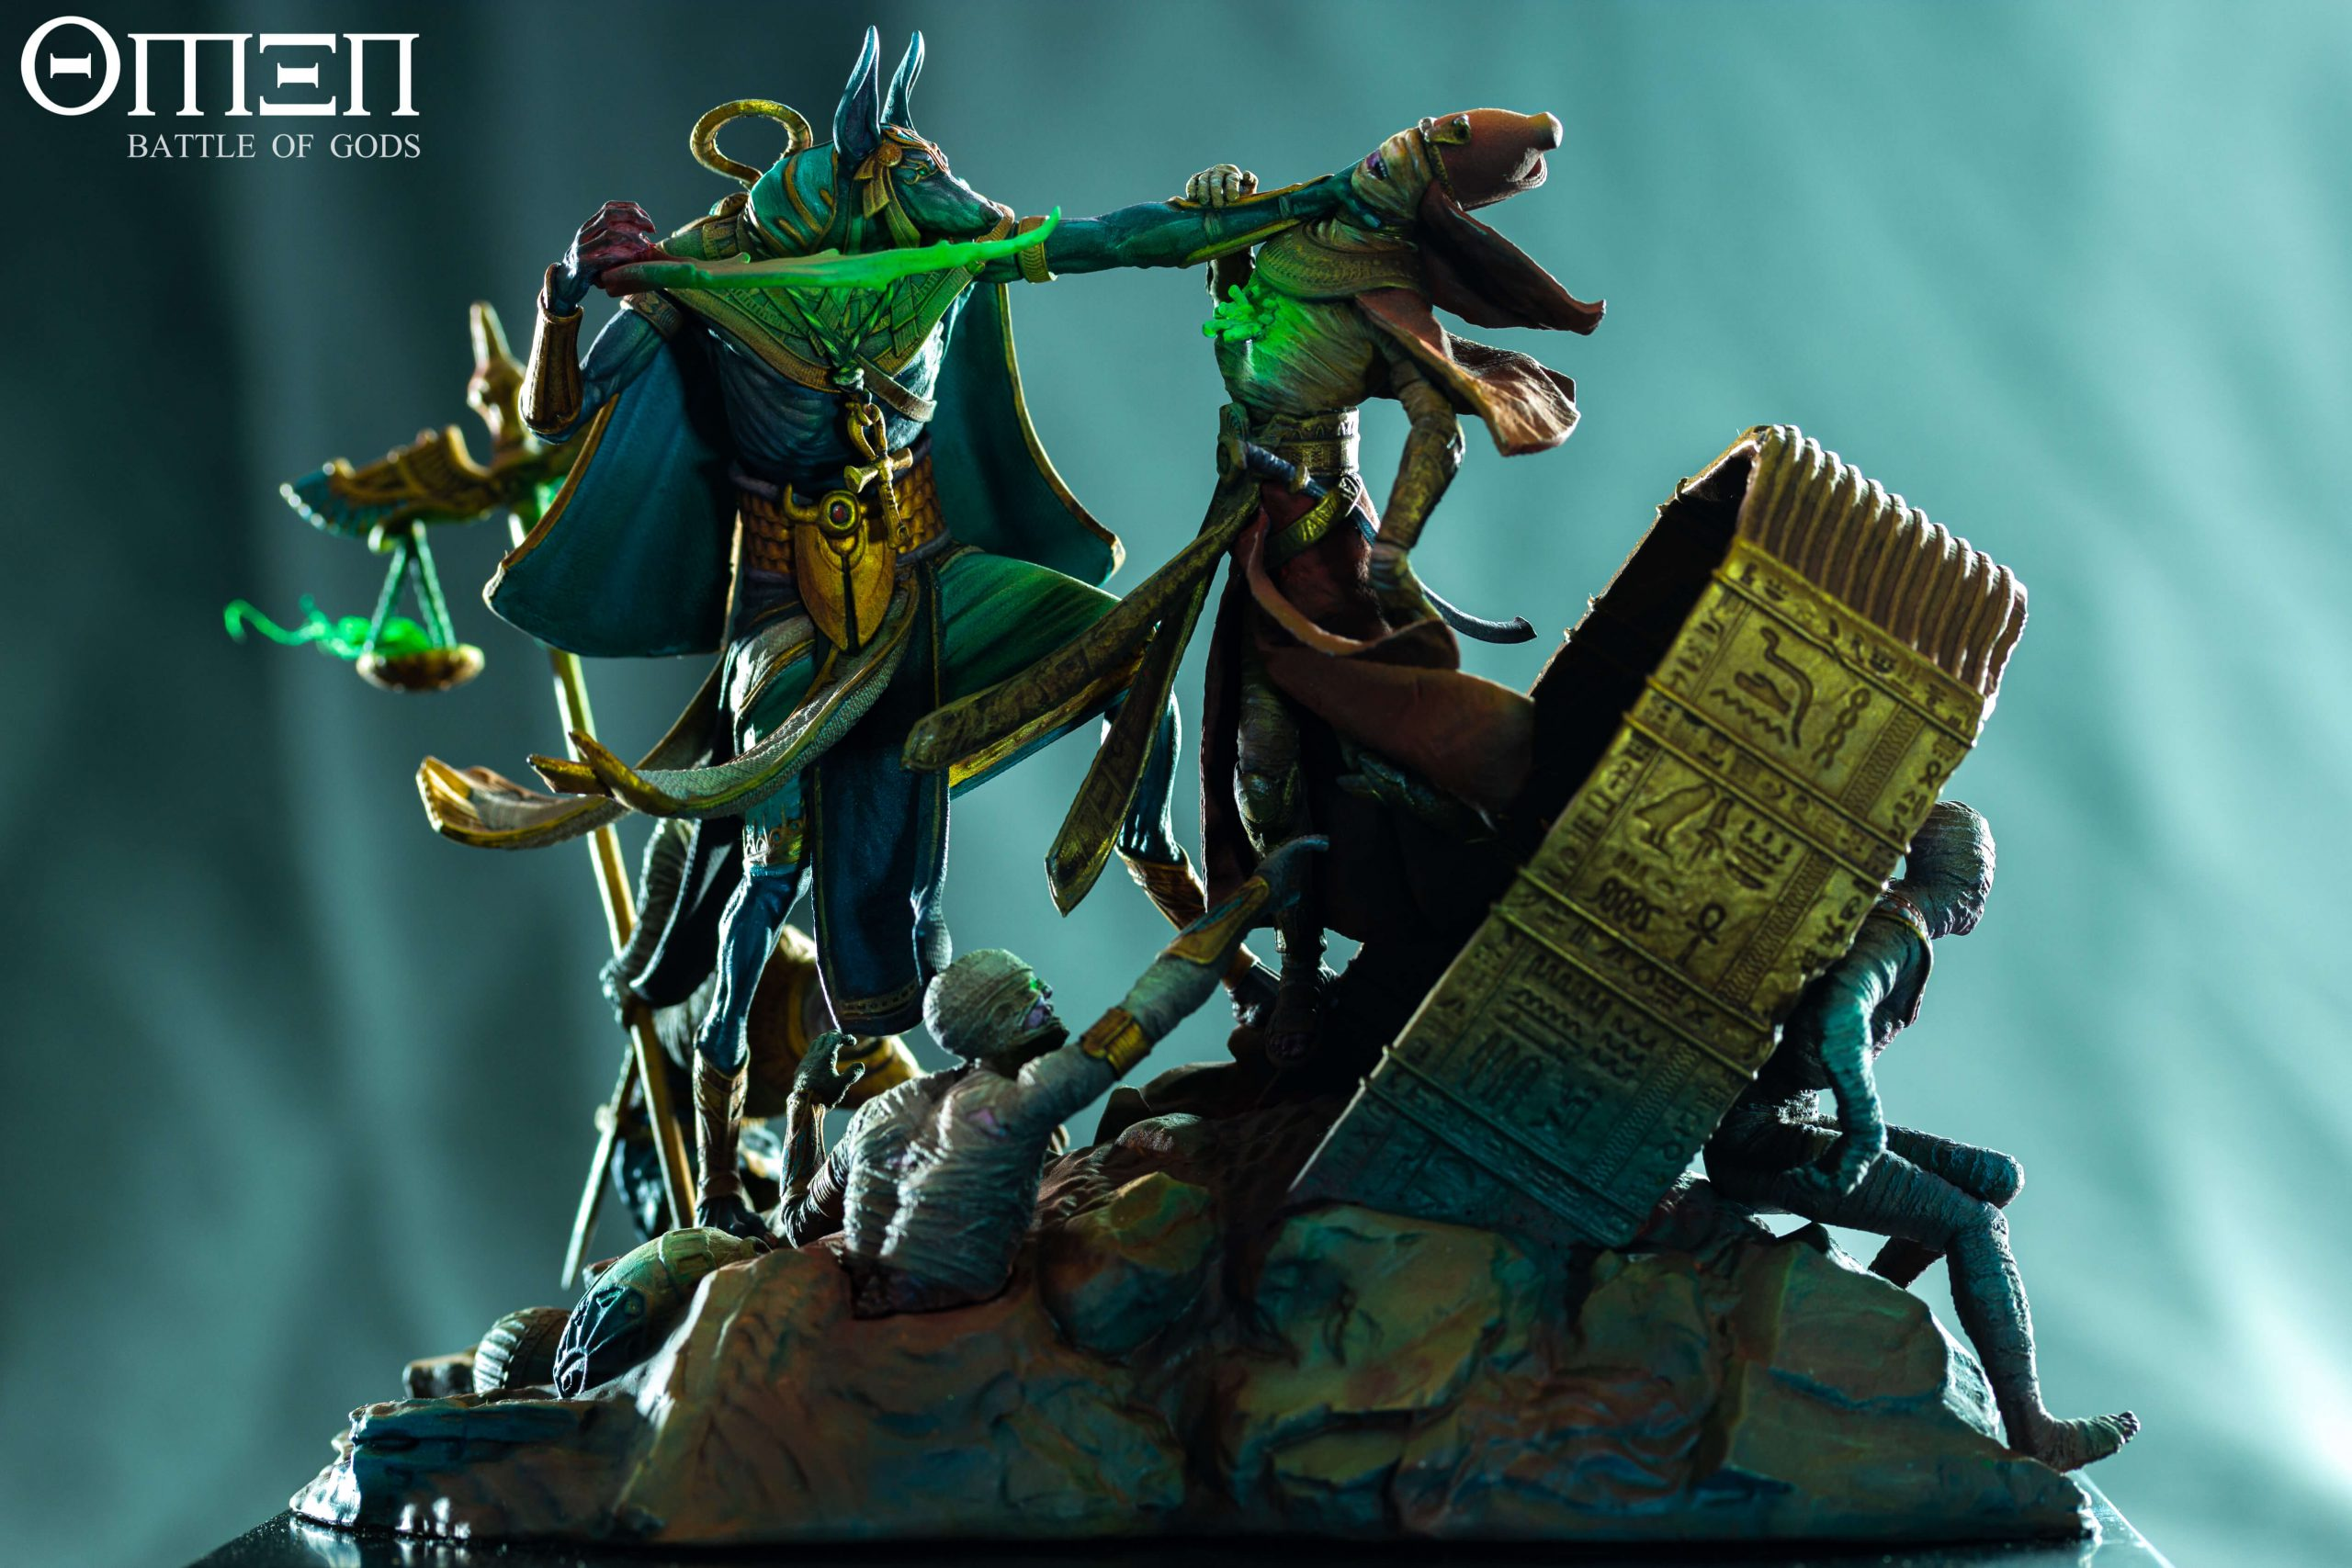 Anubis 75mm Diorama - Painted by Ricardo Pisa - Edited Photo - OMEN Battle of Gods